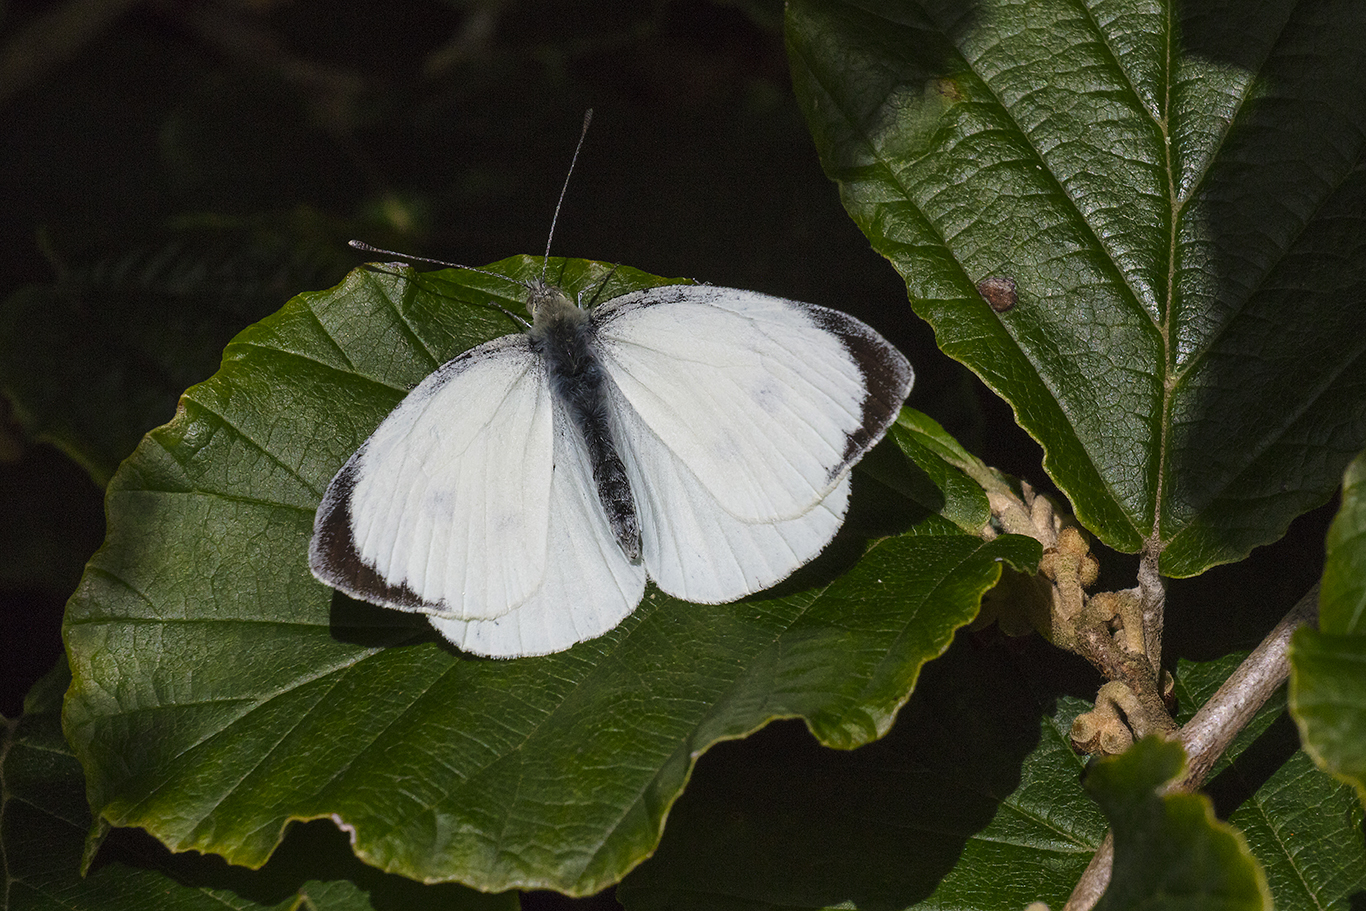 White butterfly on a leaf